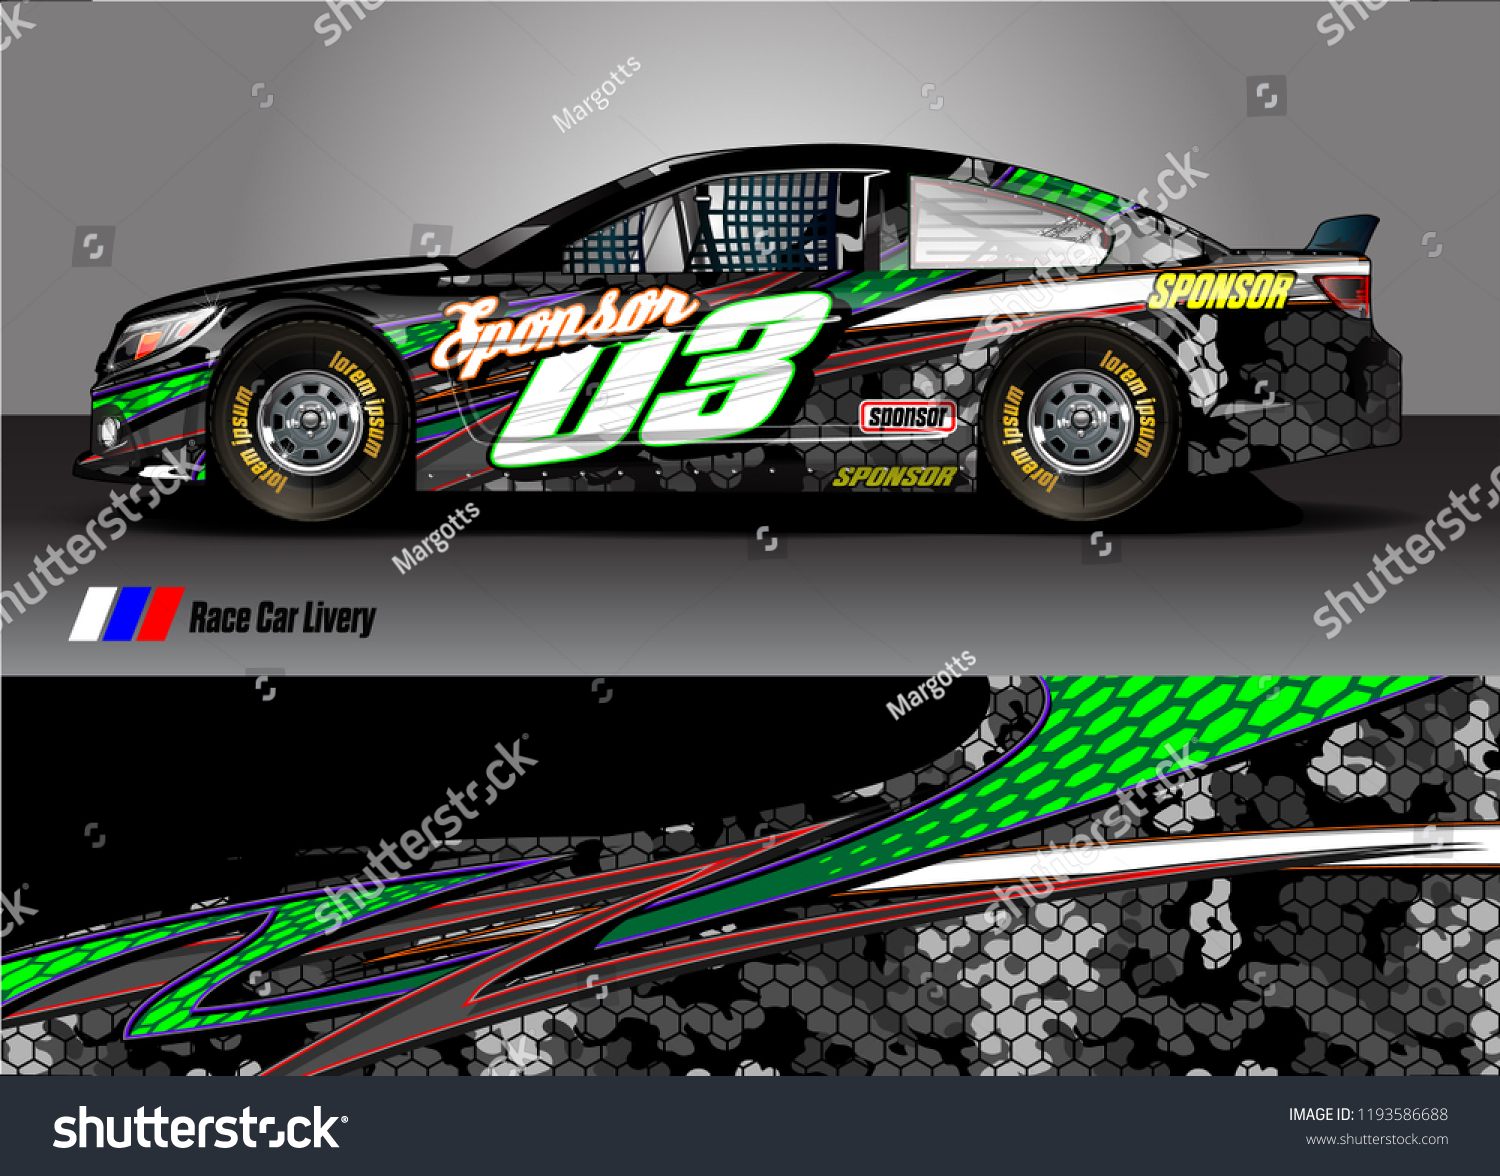 Race Car Livery Graphic Vector Abstract Stock Vector